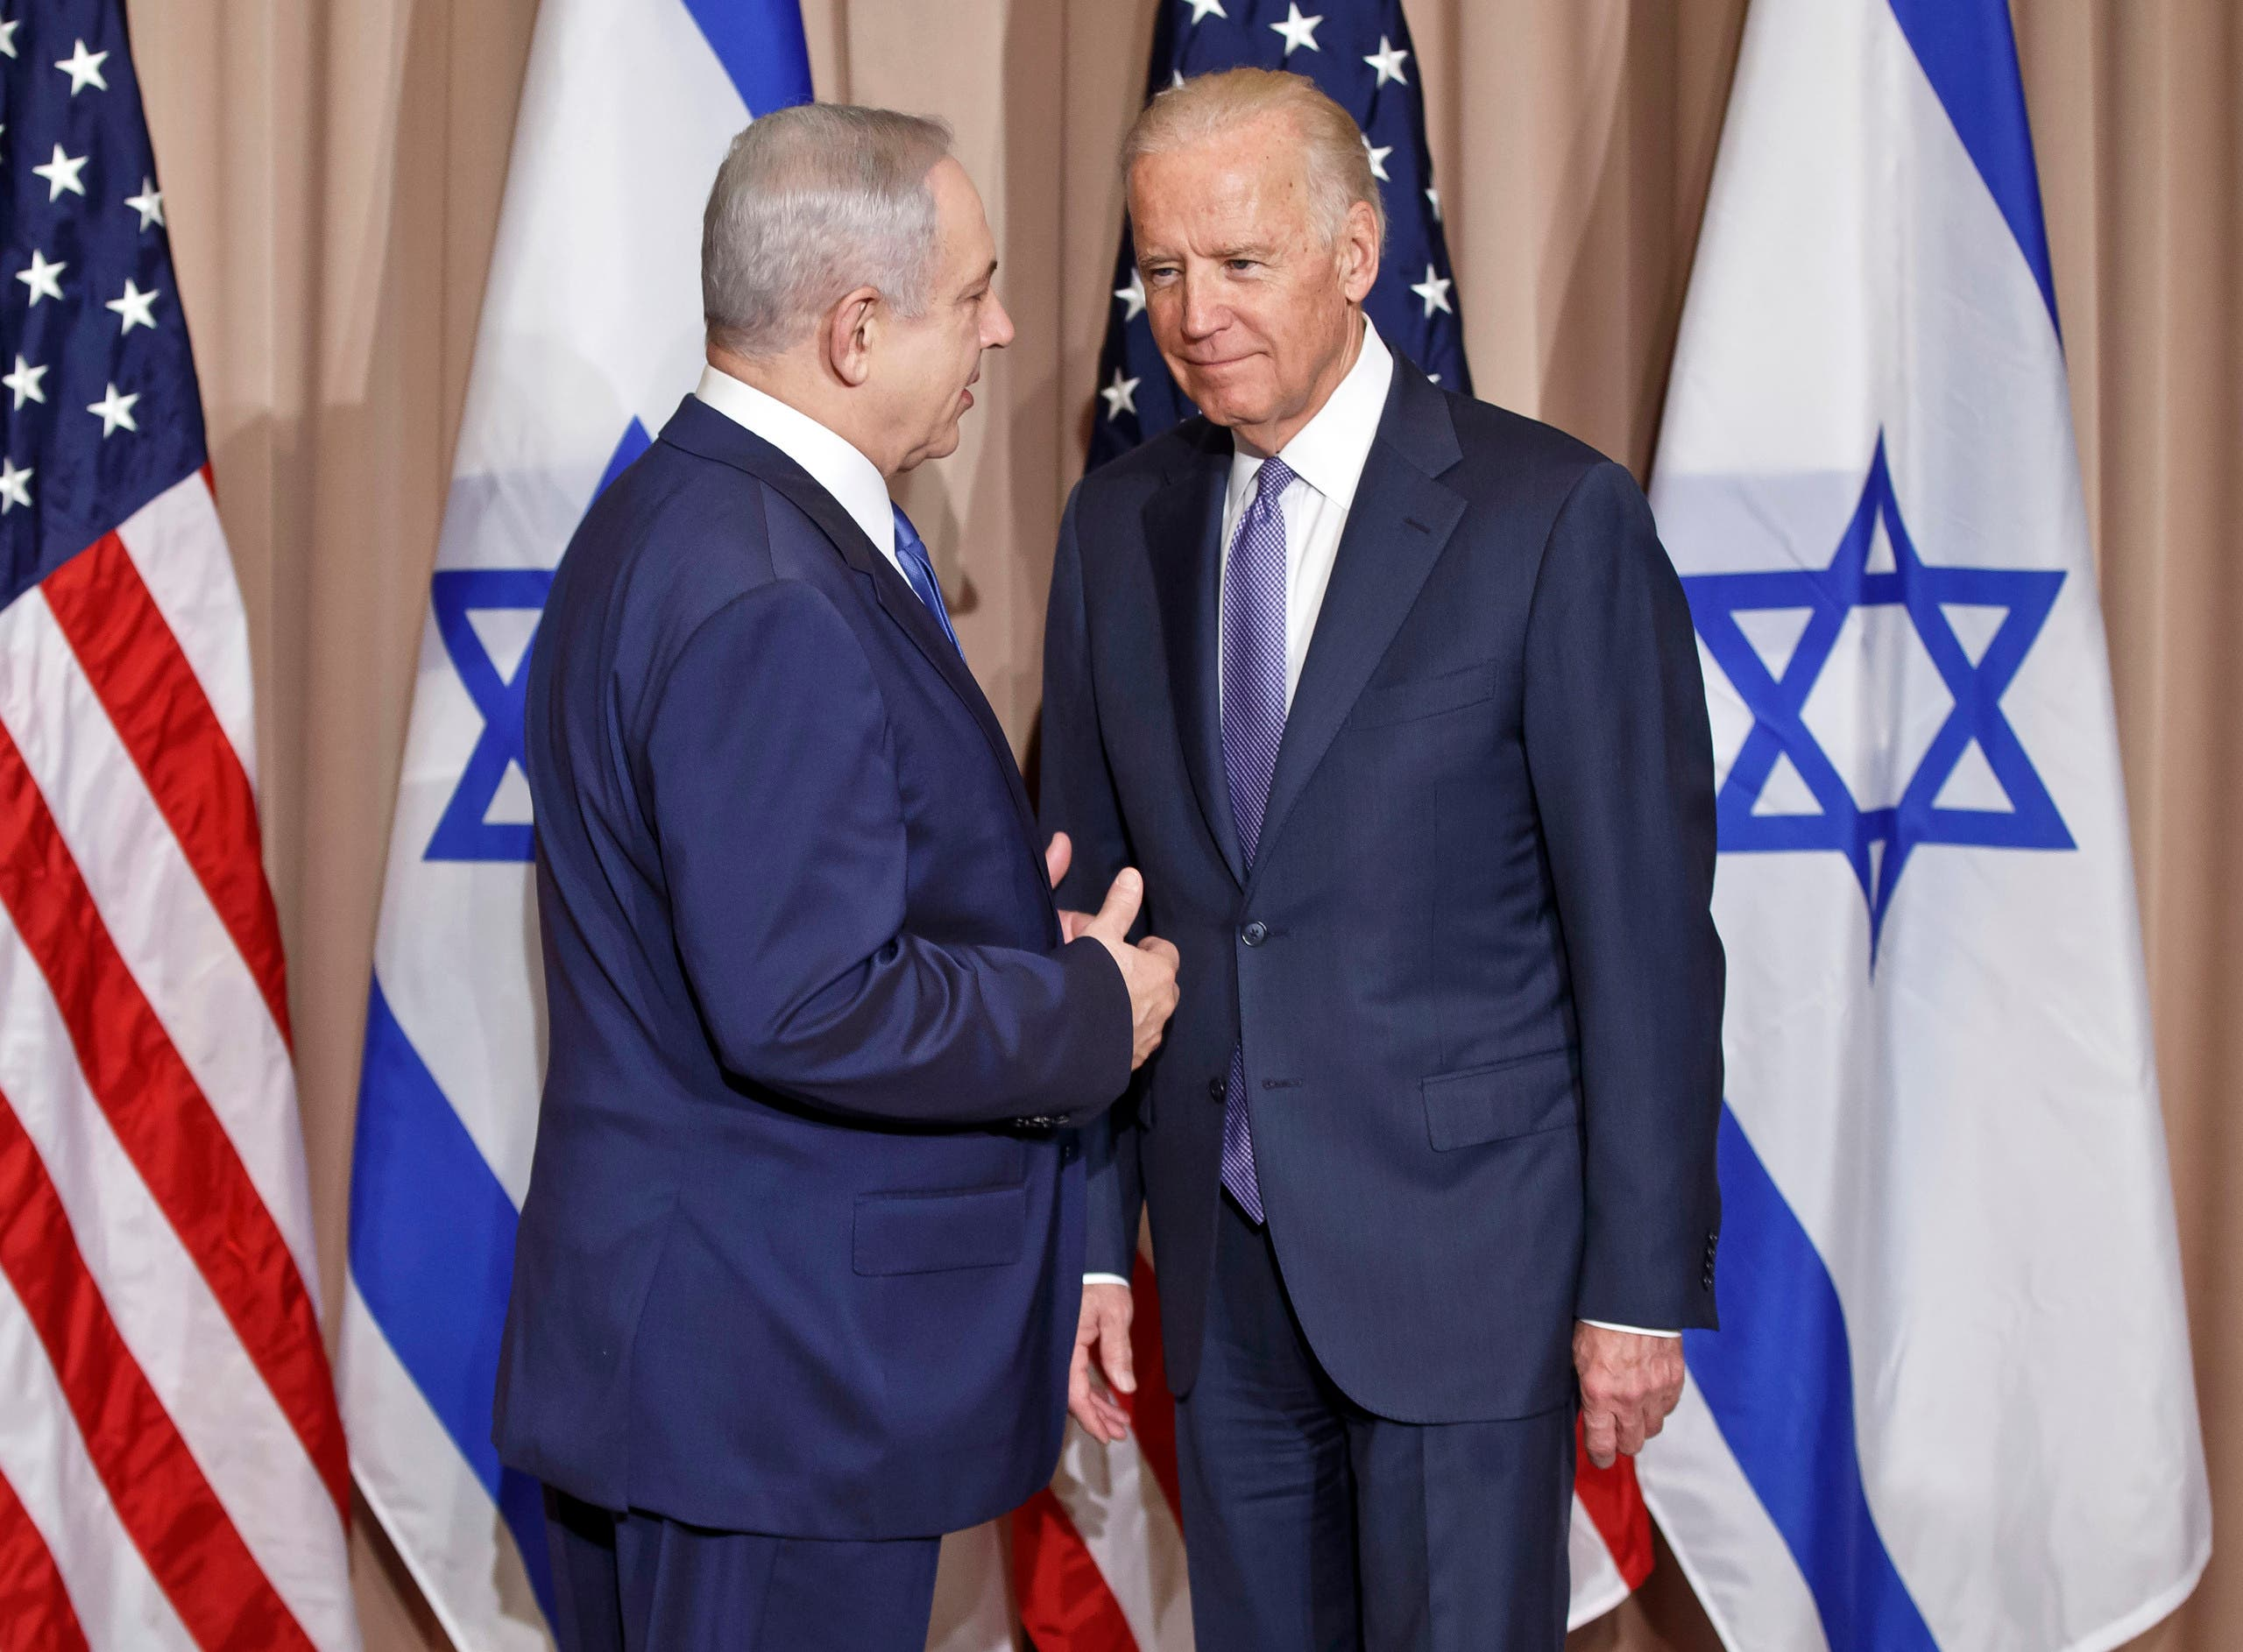 Israeli Prime Minister Benjamin Netanyahu, left, and US Vice-President Joe Biden pose for the media prior to a meeting on the sidelines of the World Economic Forum in Davos, Switzerland, Thursday, Jan. 21, 2016. (File photo: AP)